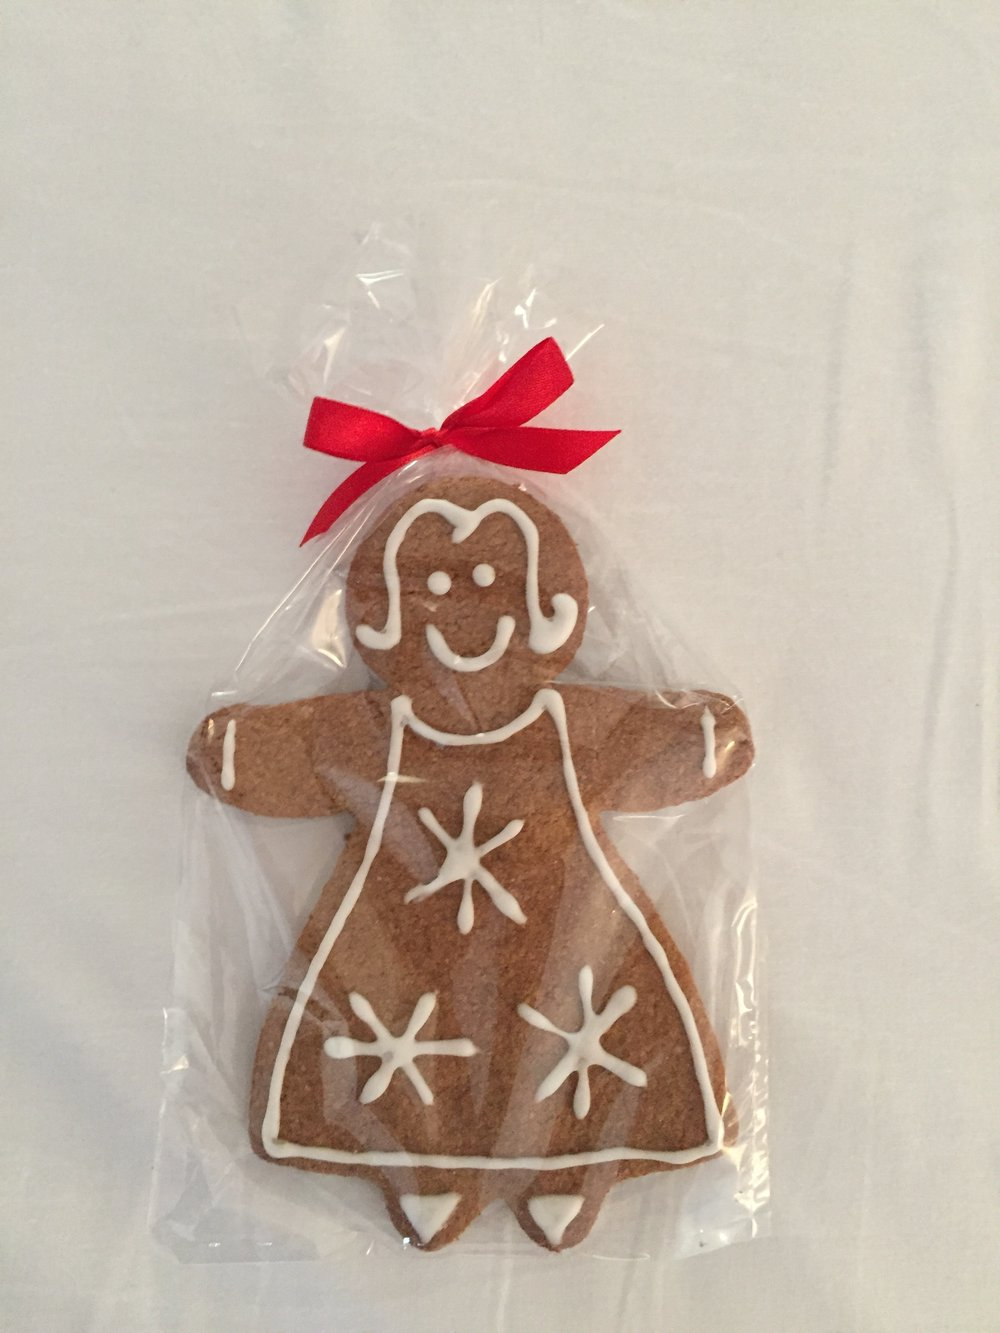 traditional gingerbread (Zagreb, Croatia)